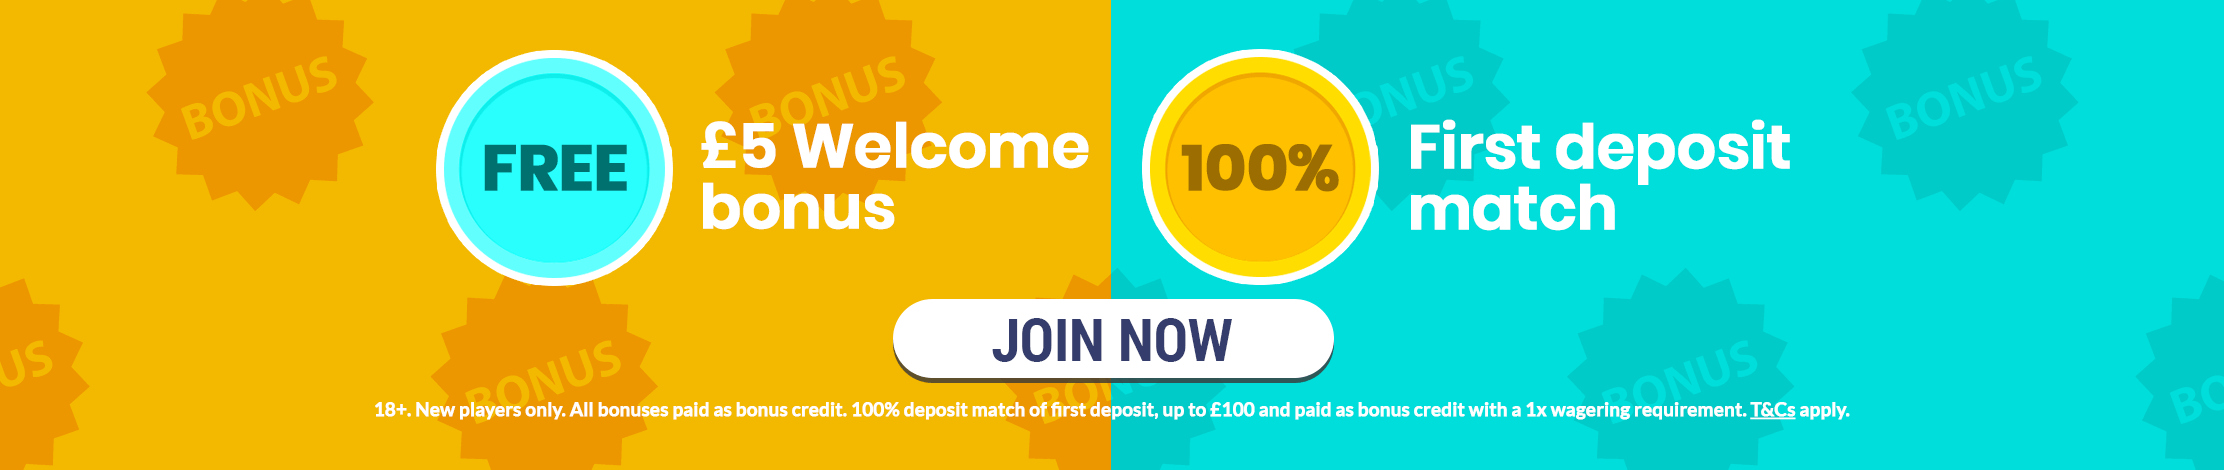 Free £5 welcome bonus and 100% First deposit match. Join Now